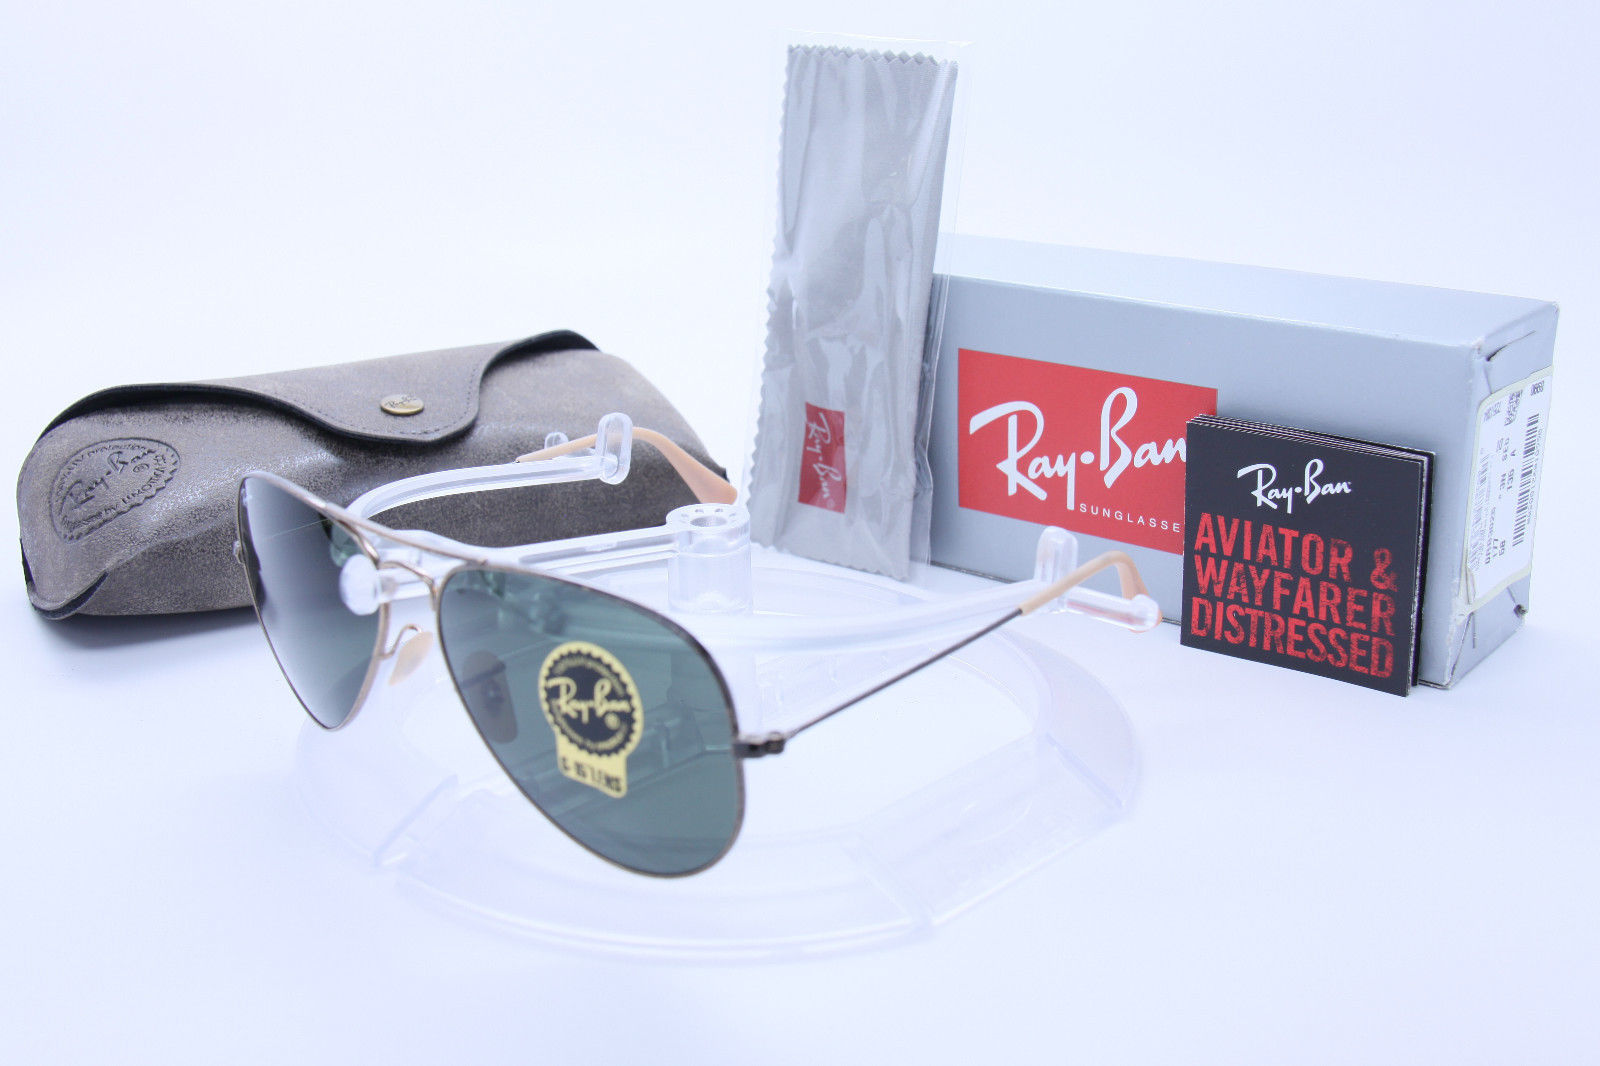 New Ray Ban Aviator RB3025 177 58mm ANTIQUE Gold  w/G-15 Green